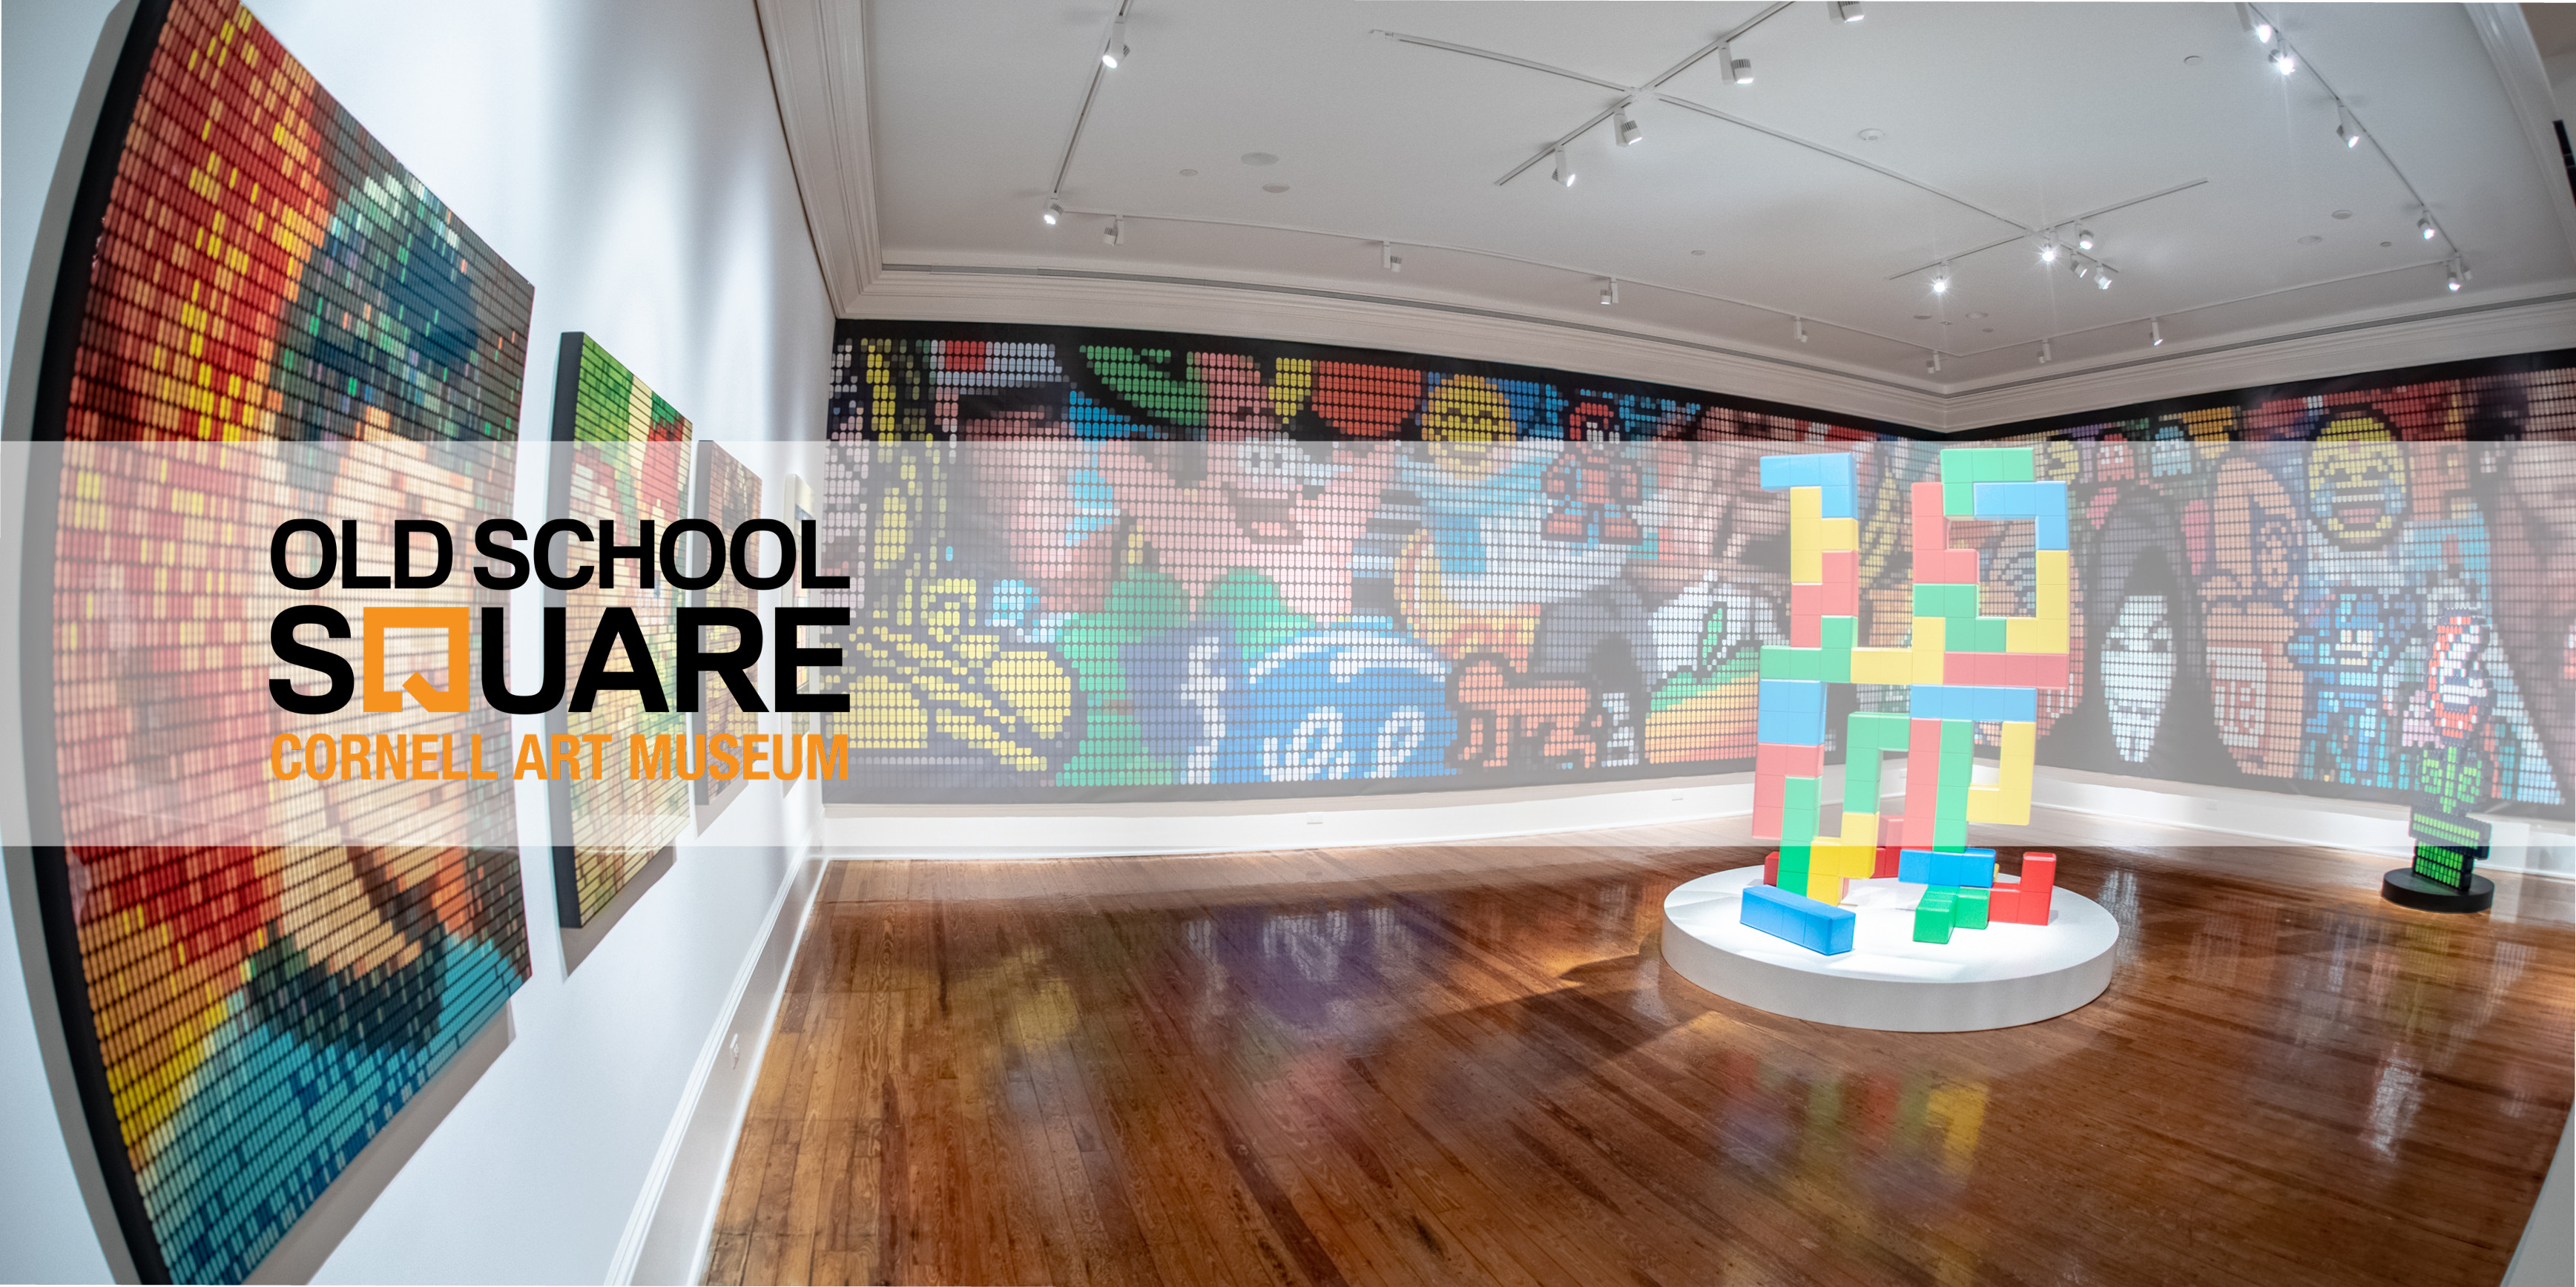 hardwood floor installation cost chicago of old school square arts and entertainment in delray beach within museum slider